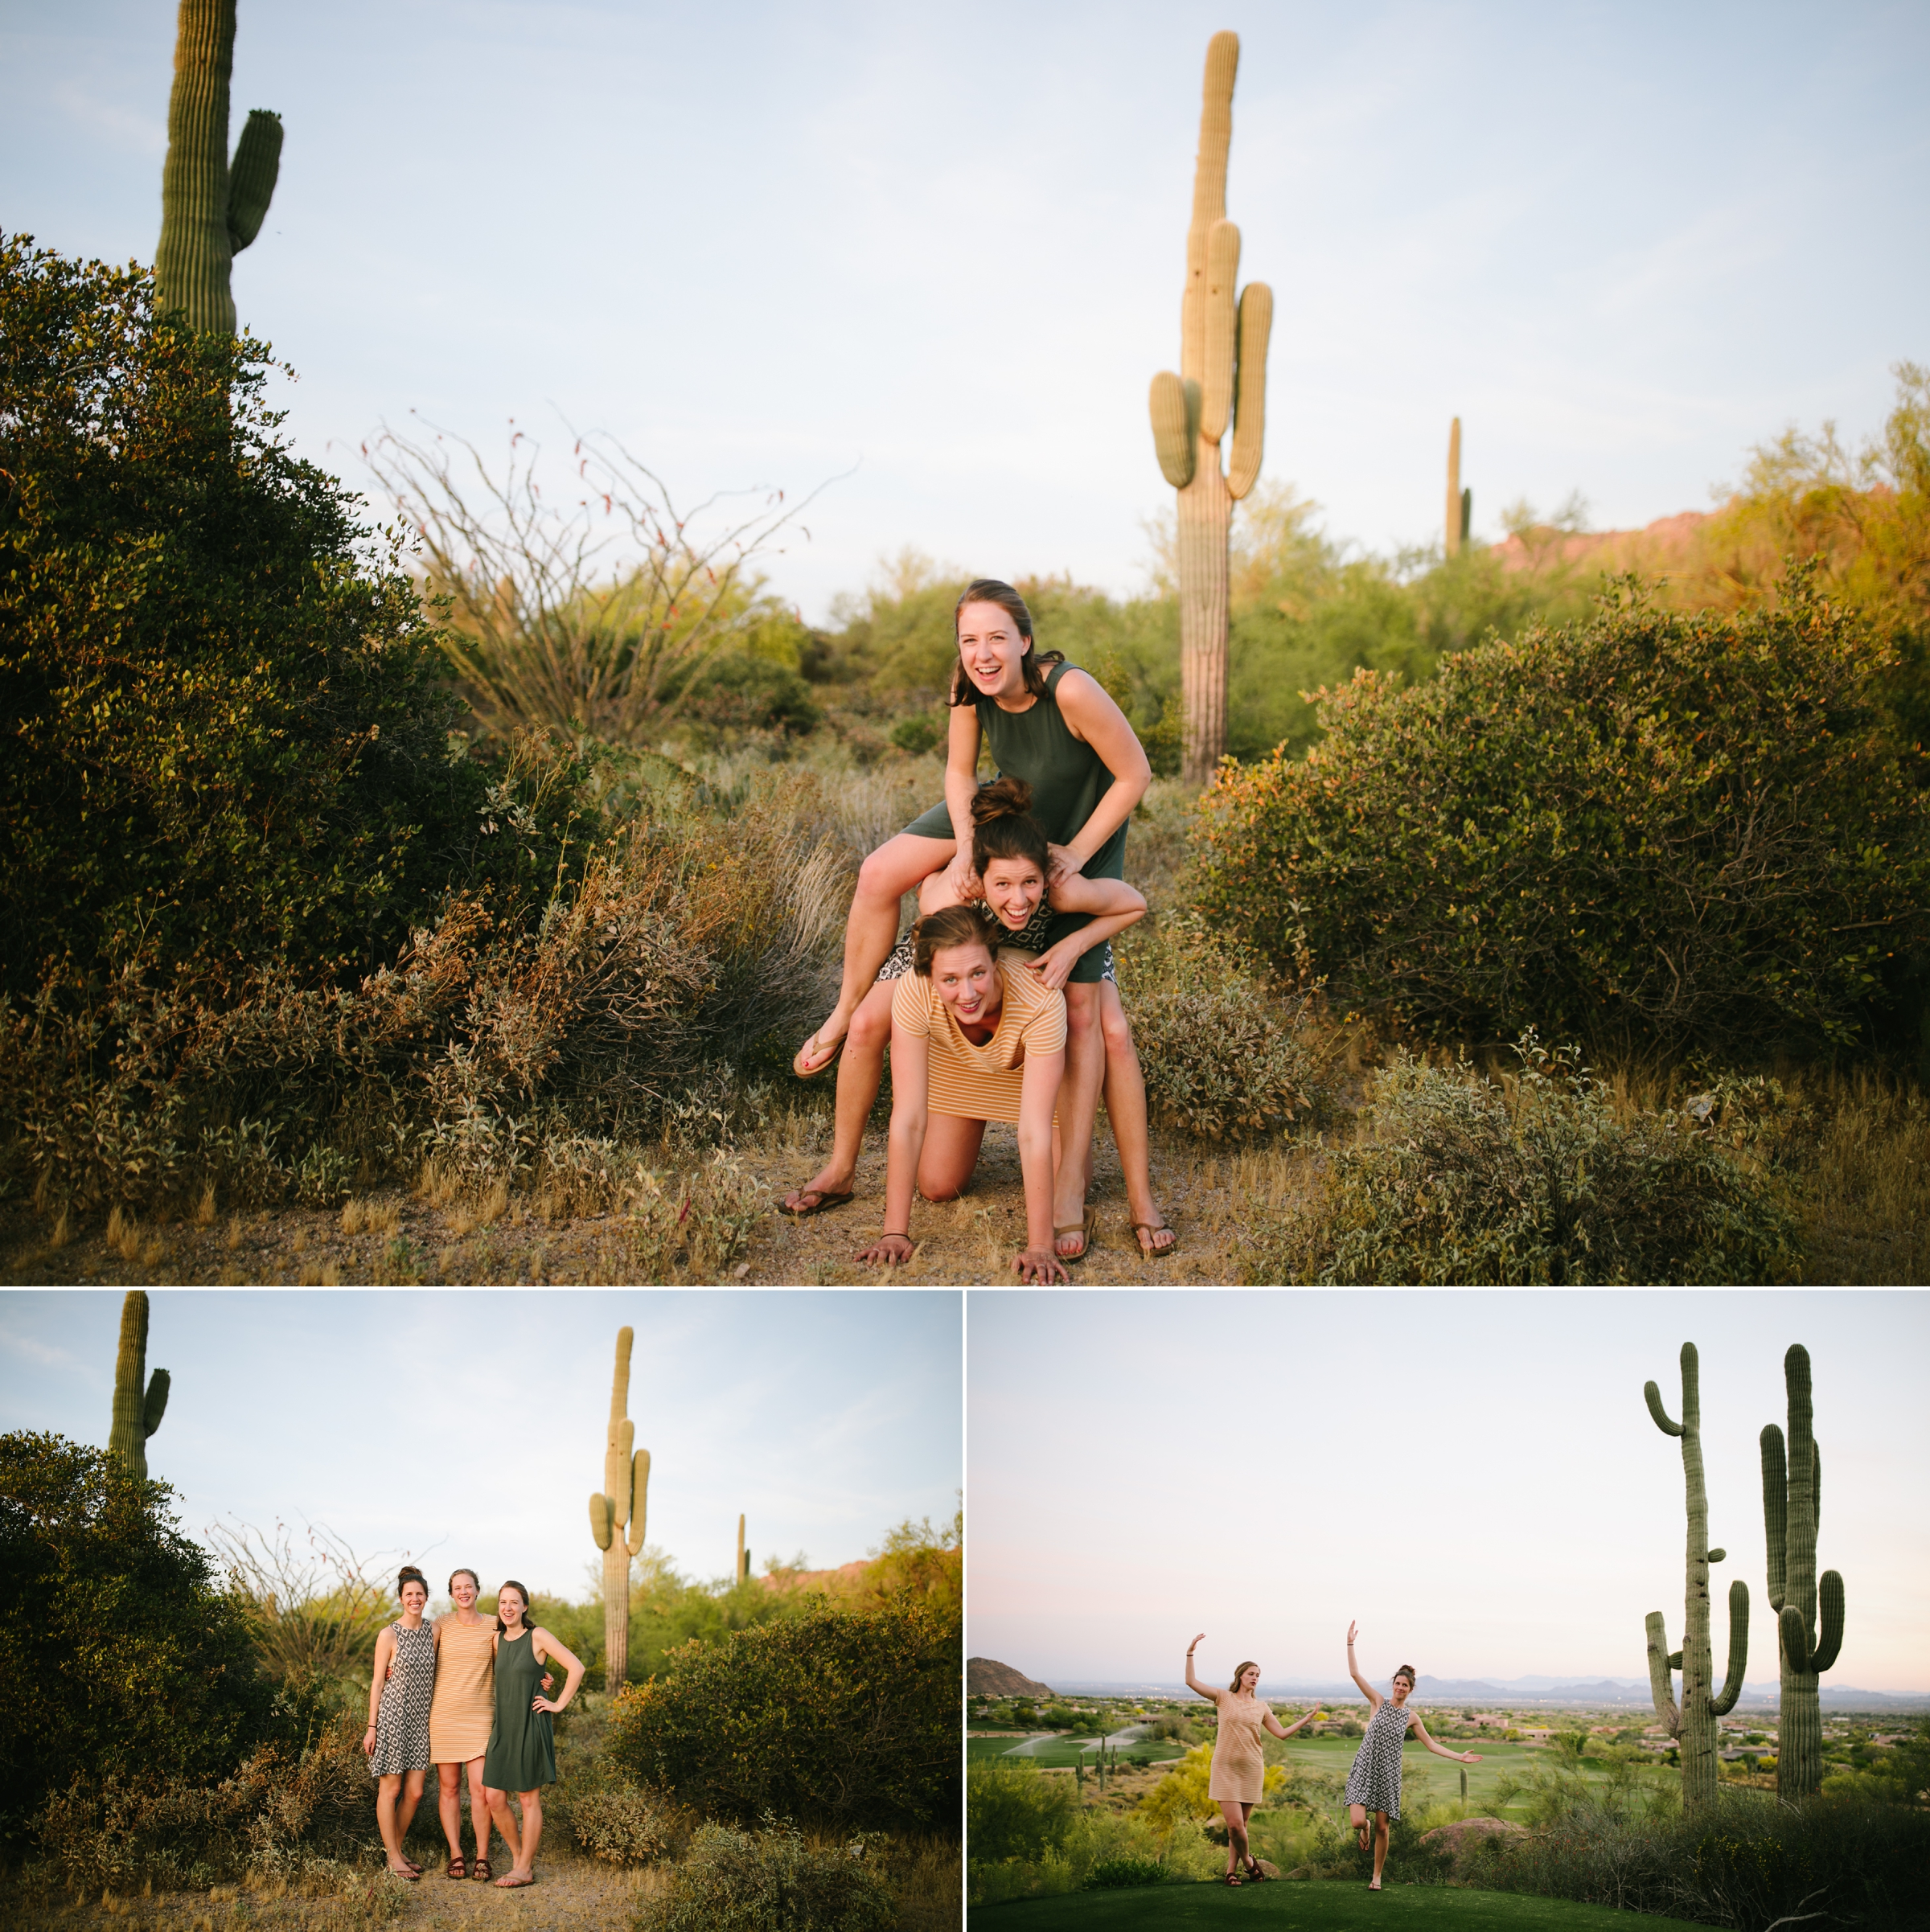 catie-bergman-arizona-southwest-hipster-seattlefamily-seattle-family-pnw-first-birthday-lifestylephotography-catie-bergman-photography-elopement-landscape-travel-wedding-pnw-portrait-lifestylephotography-vsco-northwest-friends-love_0011.jpg